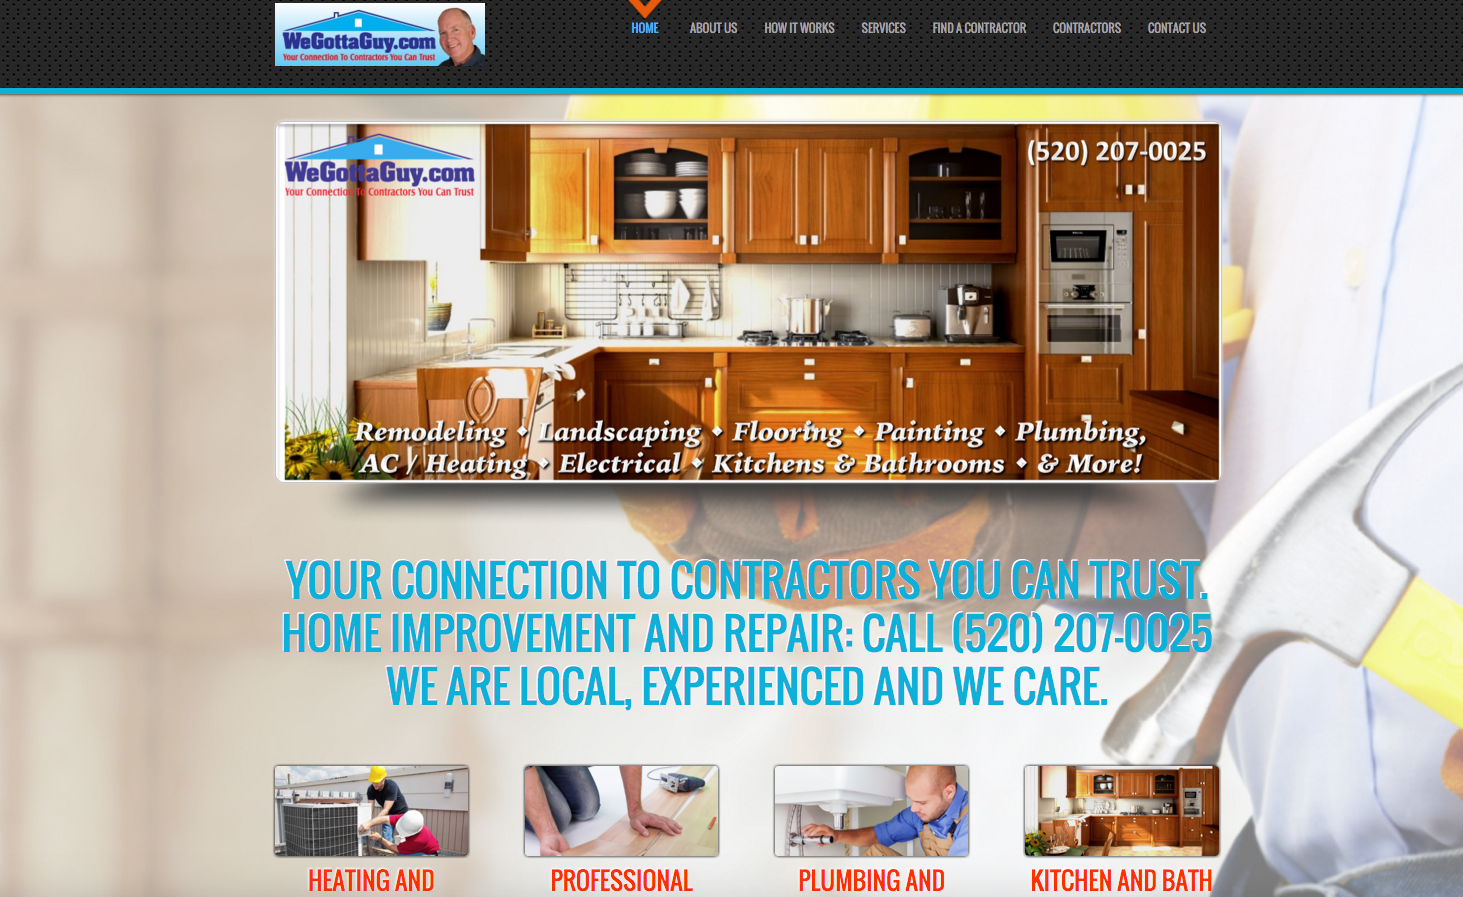 Contractor Referral Tucson, We Gotta Guy Website by eForce Marketing, Tucson Website Designer